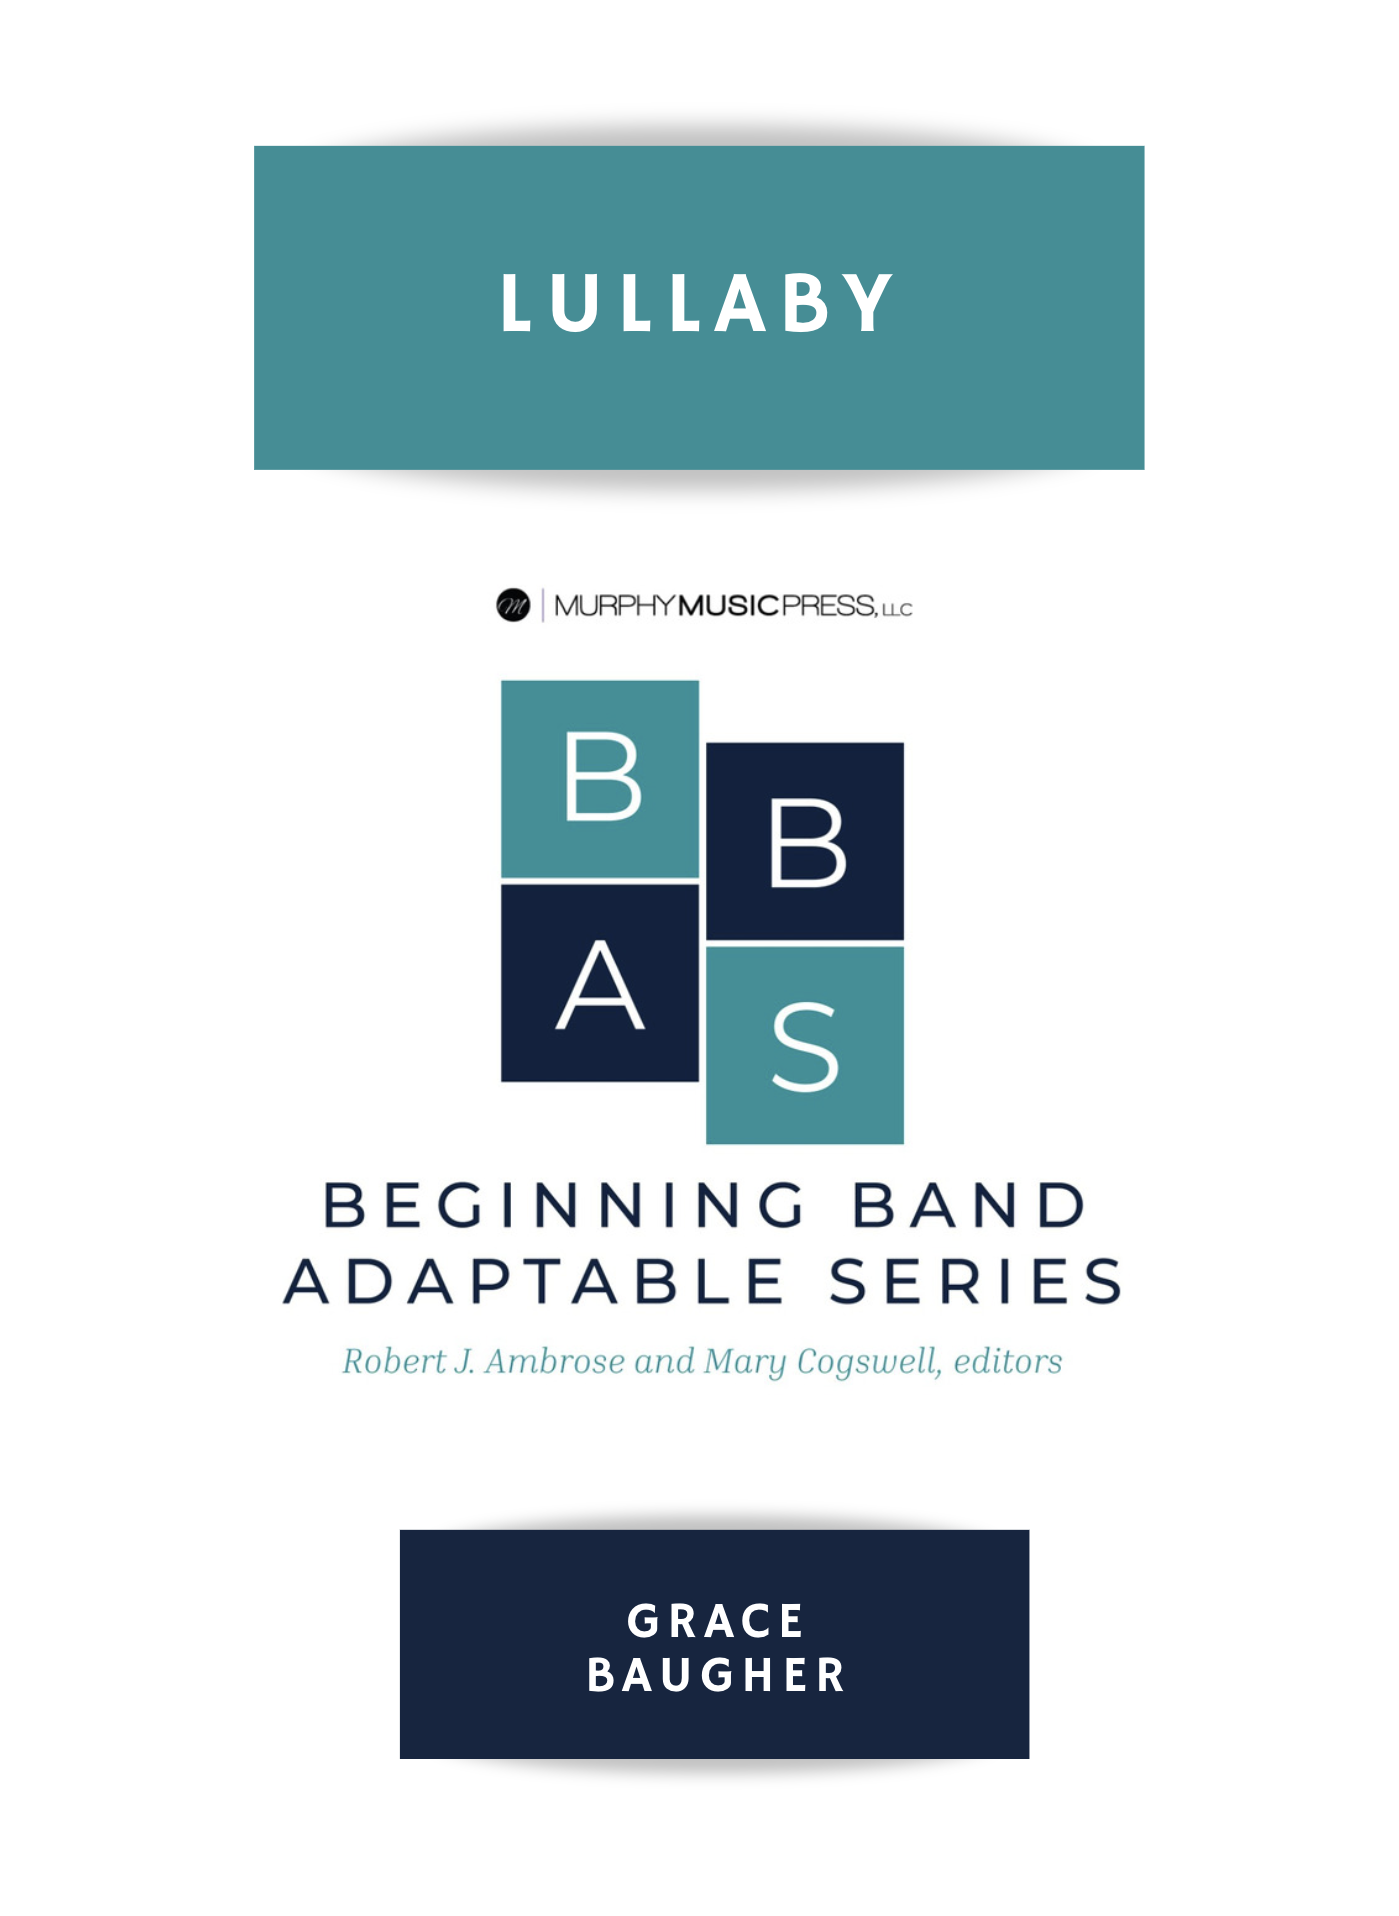 Lullaby by Grace Baugher